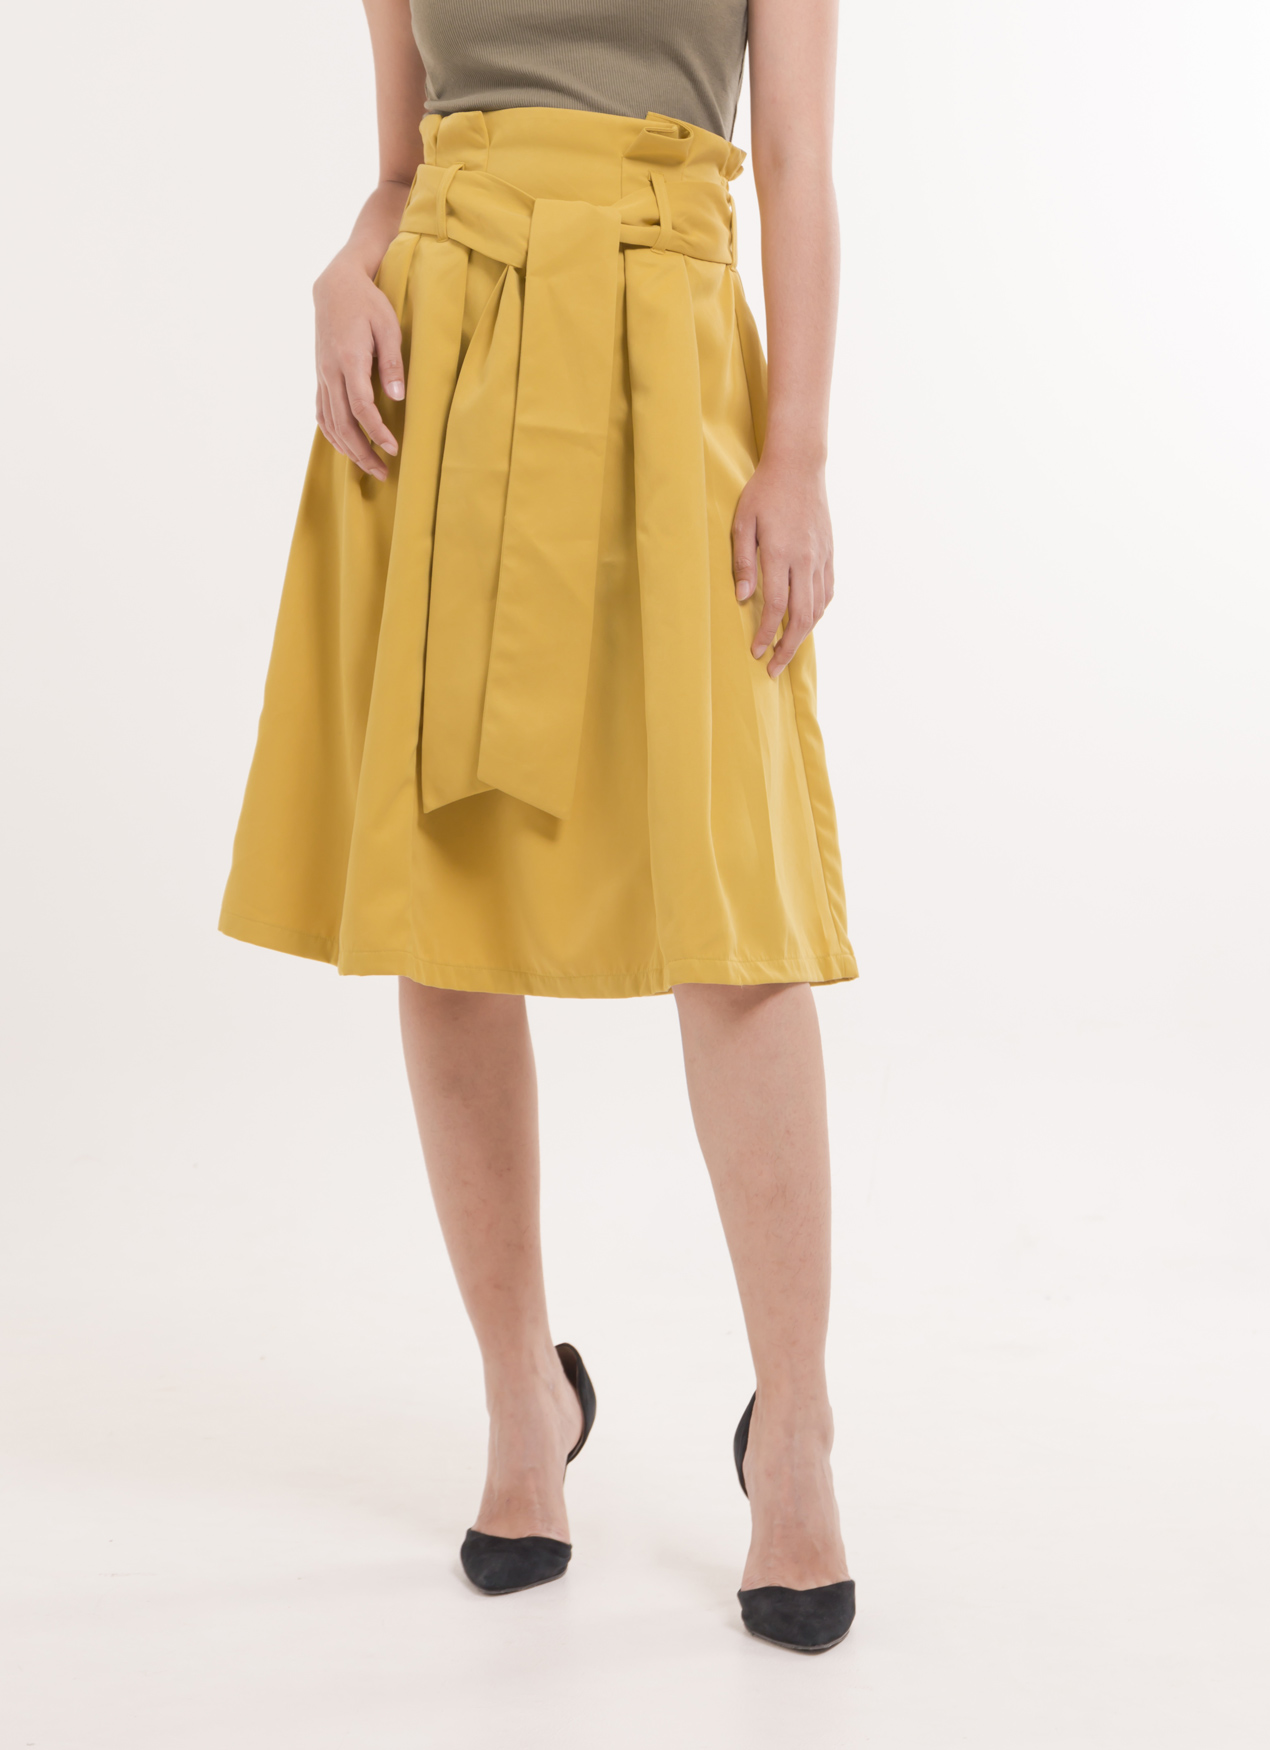 Earth, Music & Ecology Rei Belted Skirt - Mustard